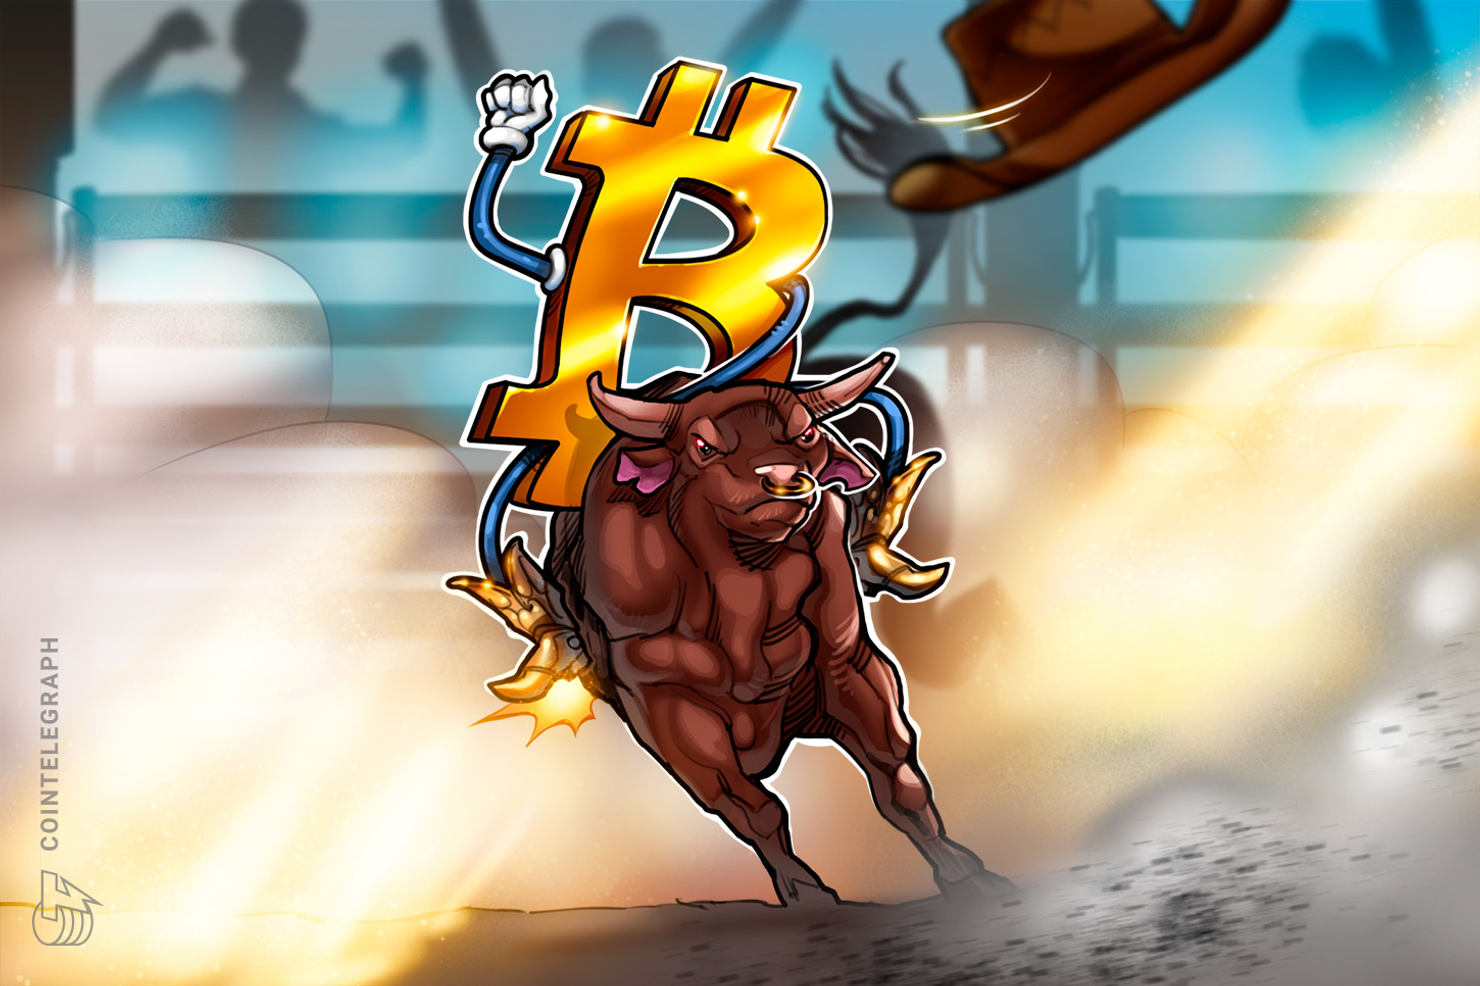 Bitcoin Price Now in 'Early Phase' of the Next Bull Cycle, Analysts Say